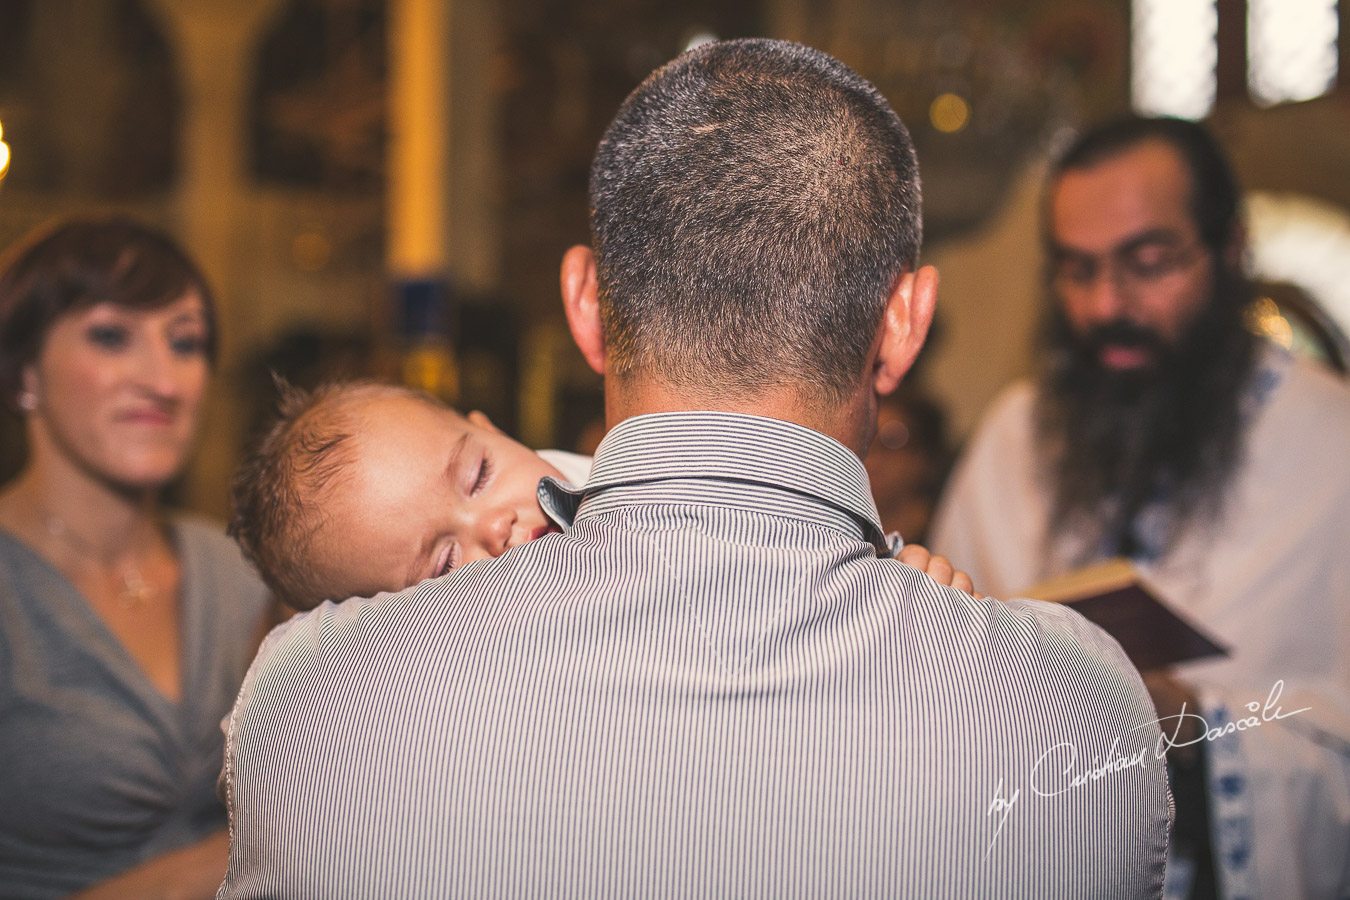 Melting Christening Photography in Limassol with Thomas. Photography by Cristian Dascalu